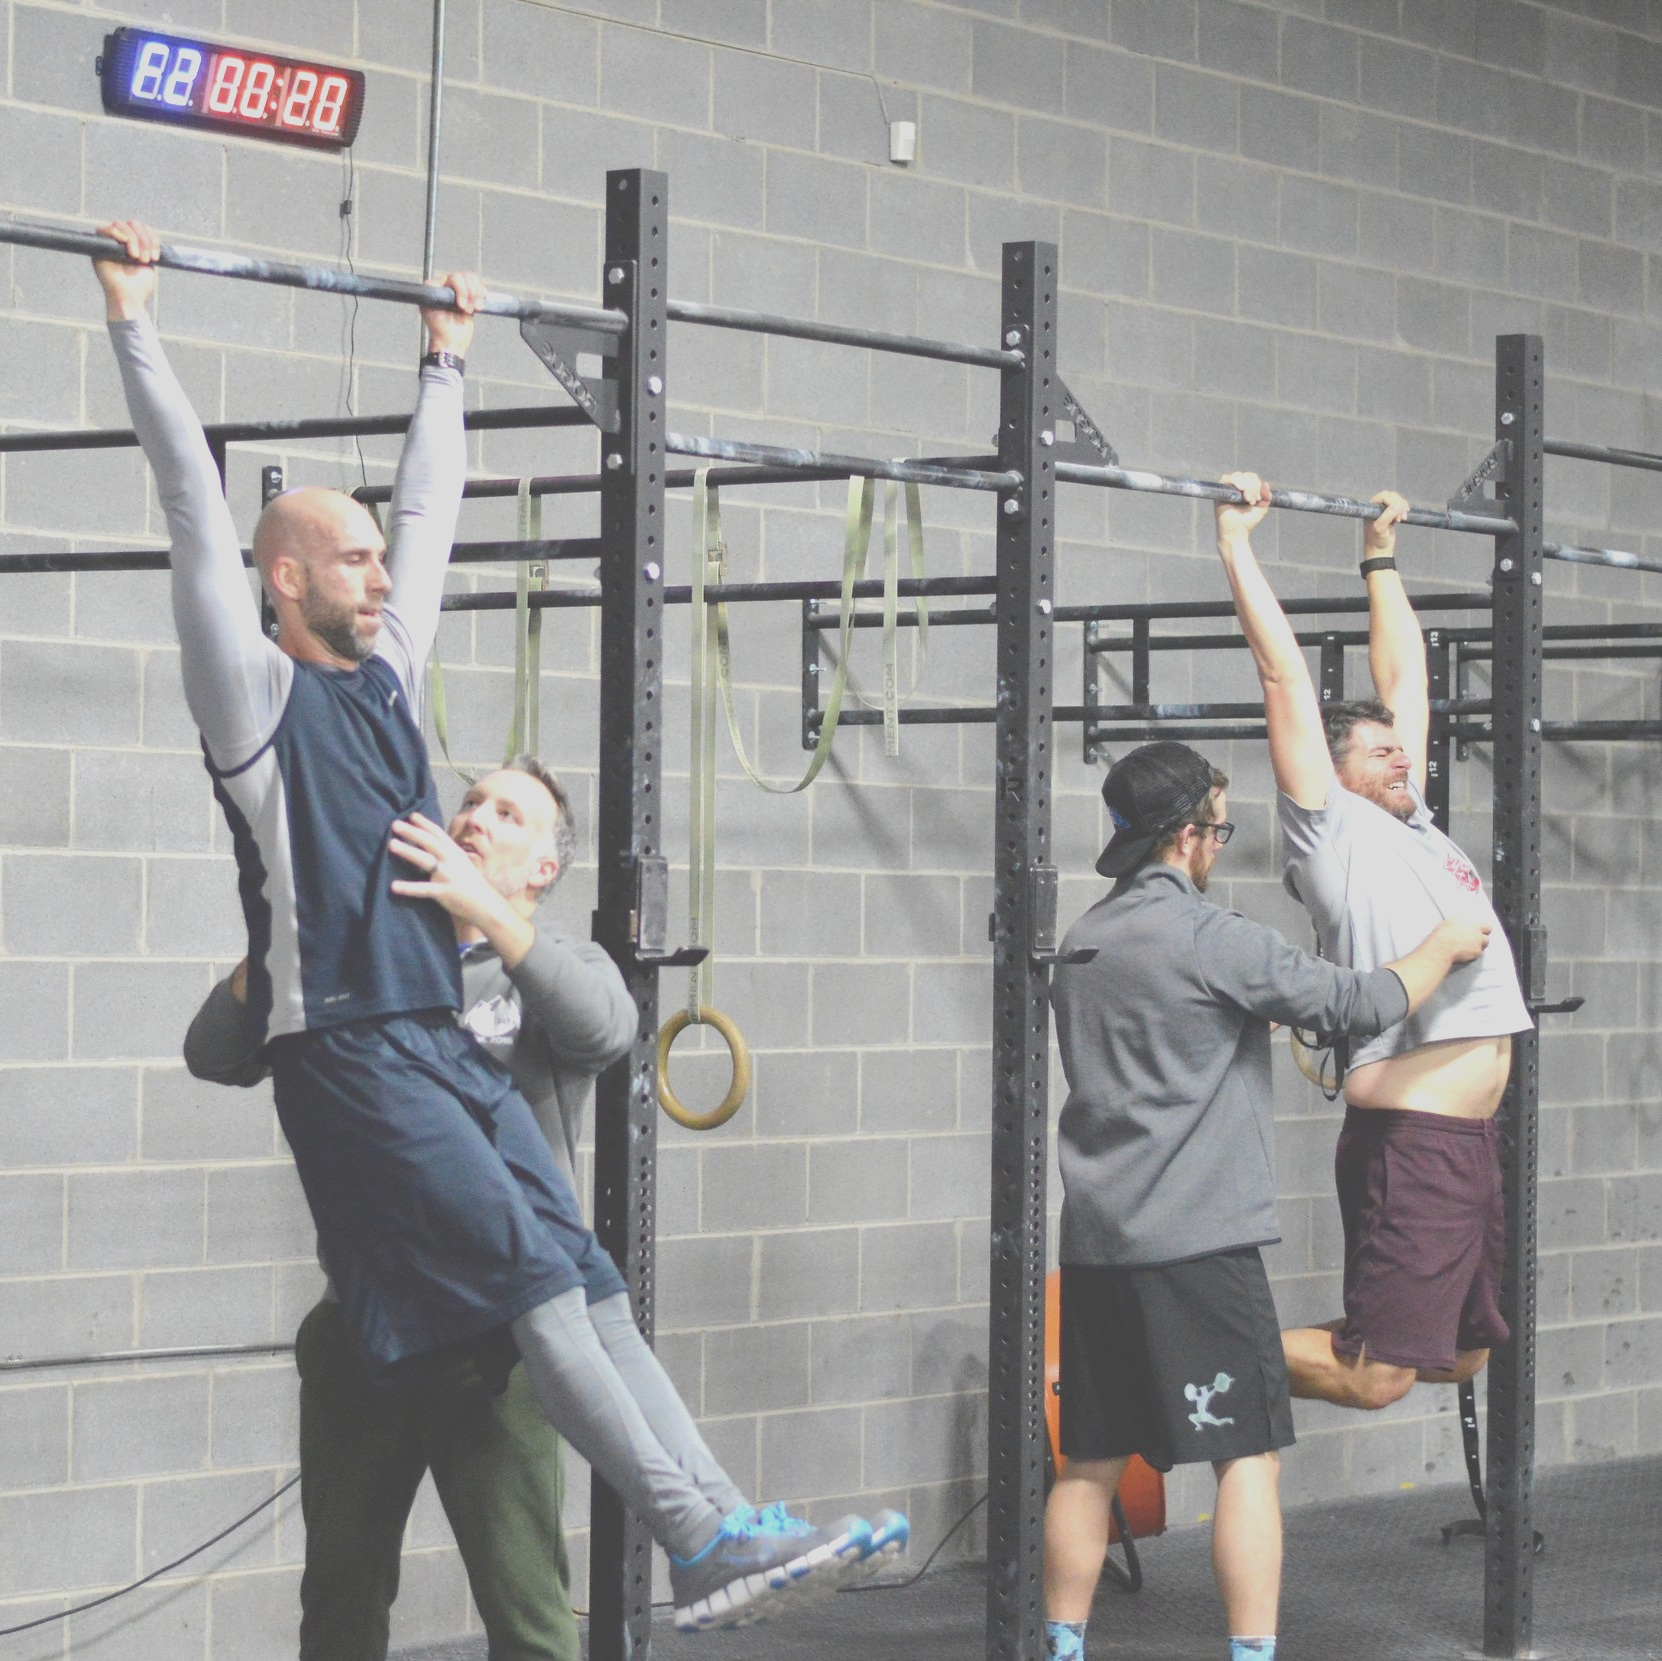 PERSONAL TRAINING -$35 / Half Hour - Get extra 1:1 attention to help with any areas of concern.